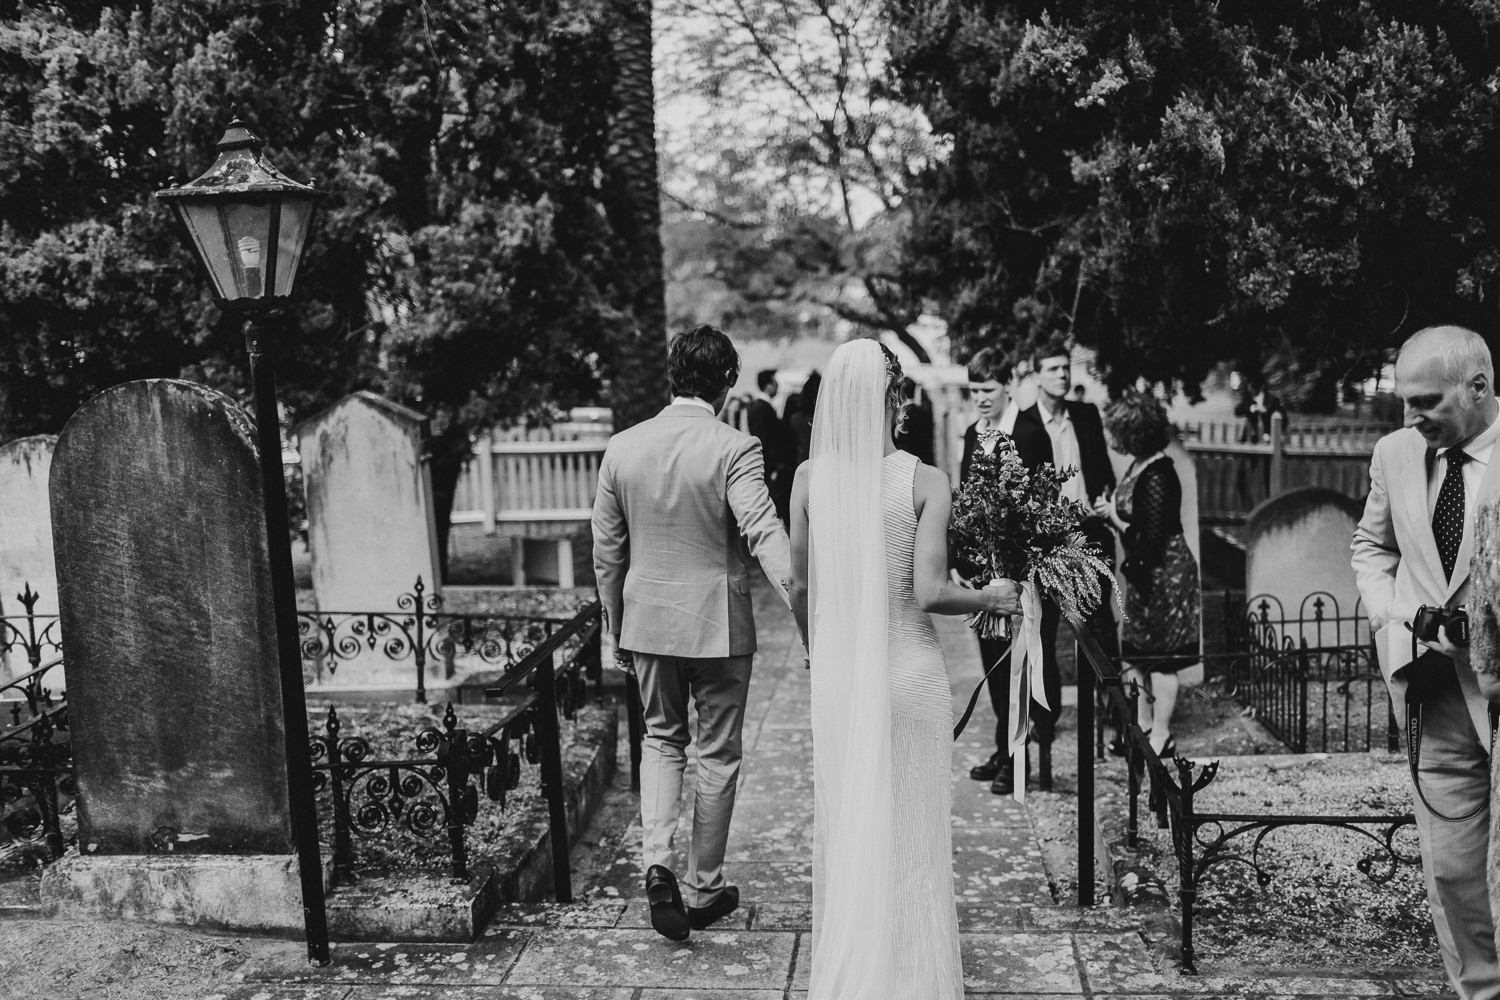 briars-country-lodge-wedding-bowral-nsw-miriam-andy-65